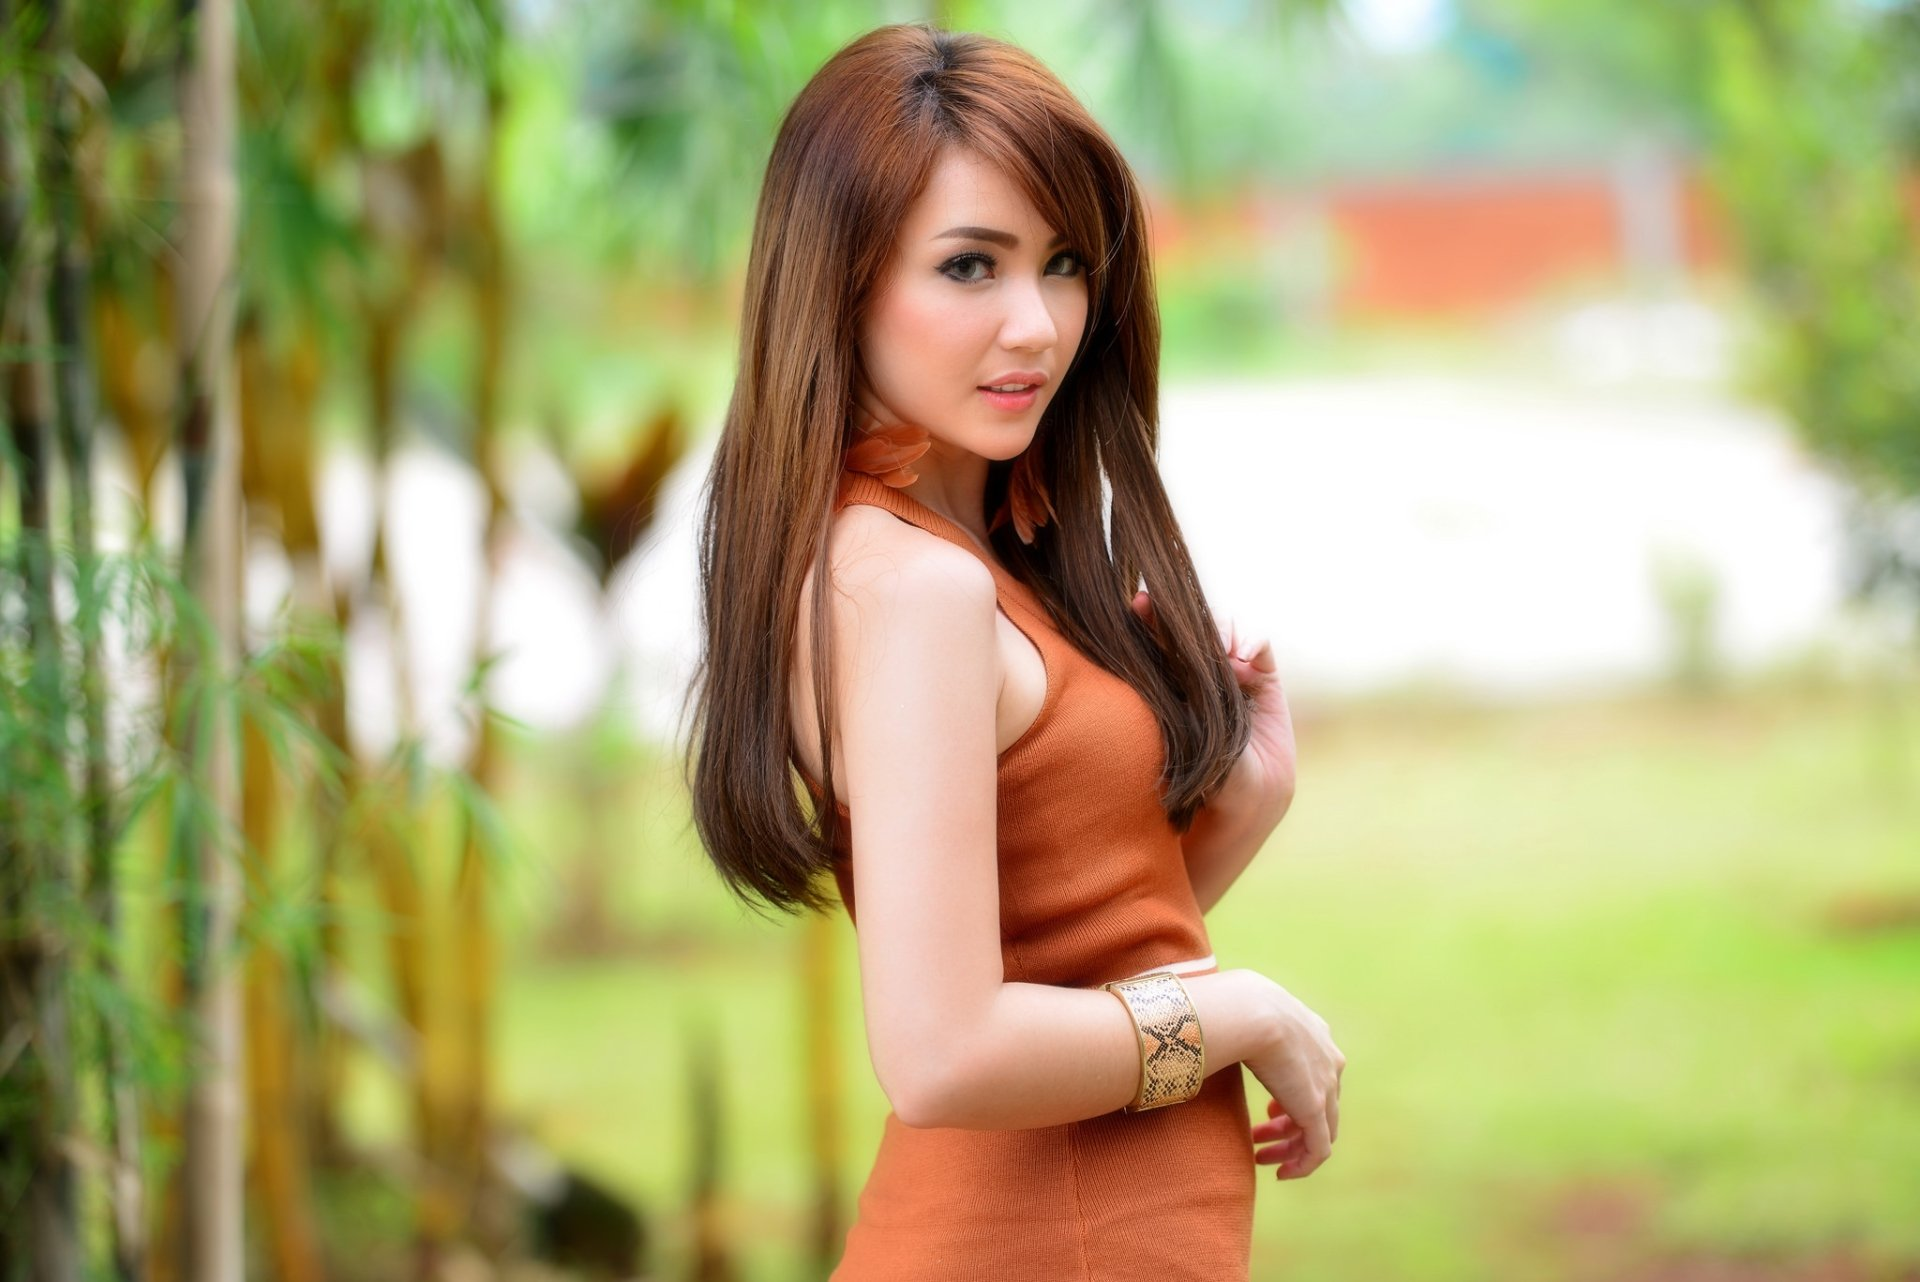 Women - Asian  Woman Model Girl Depth Of Field Brunette Orange Dress Wallpaper